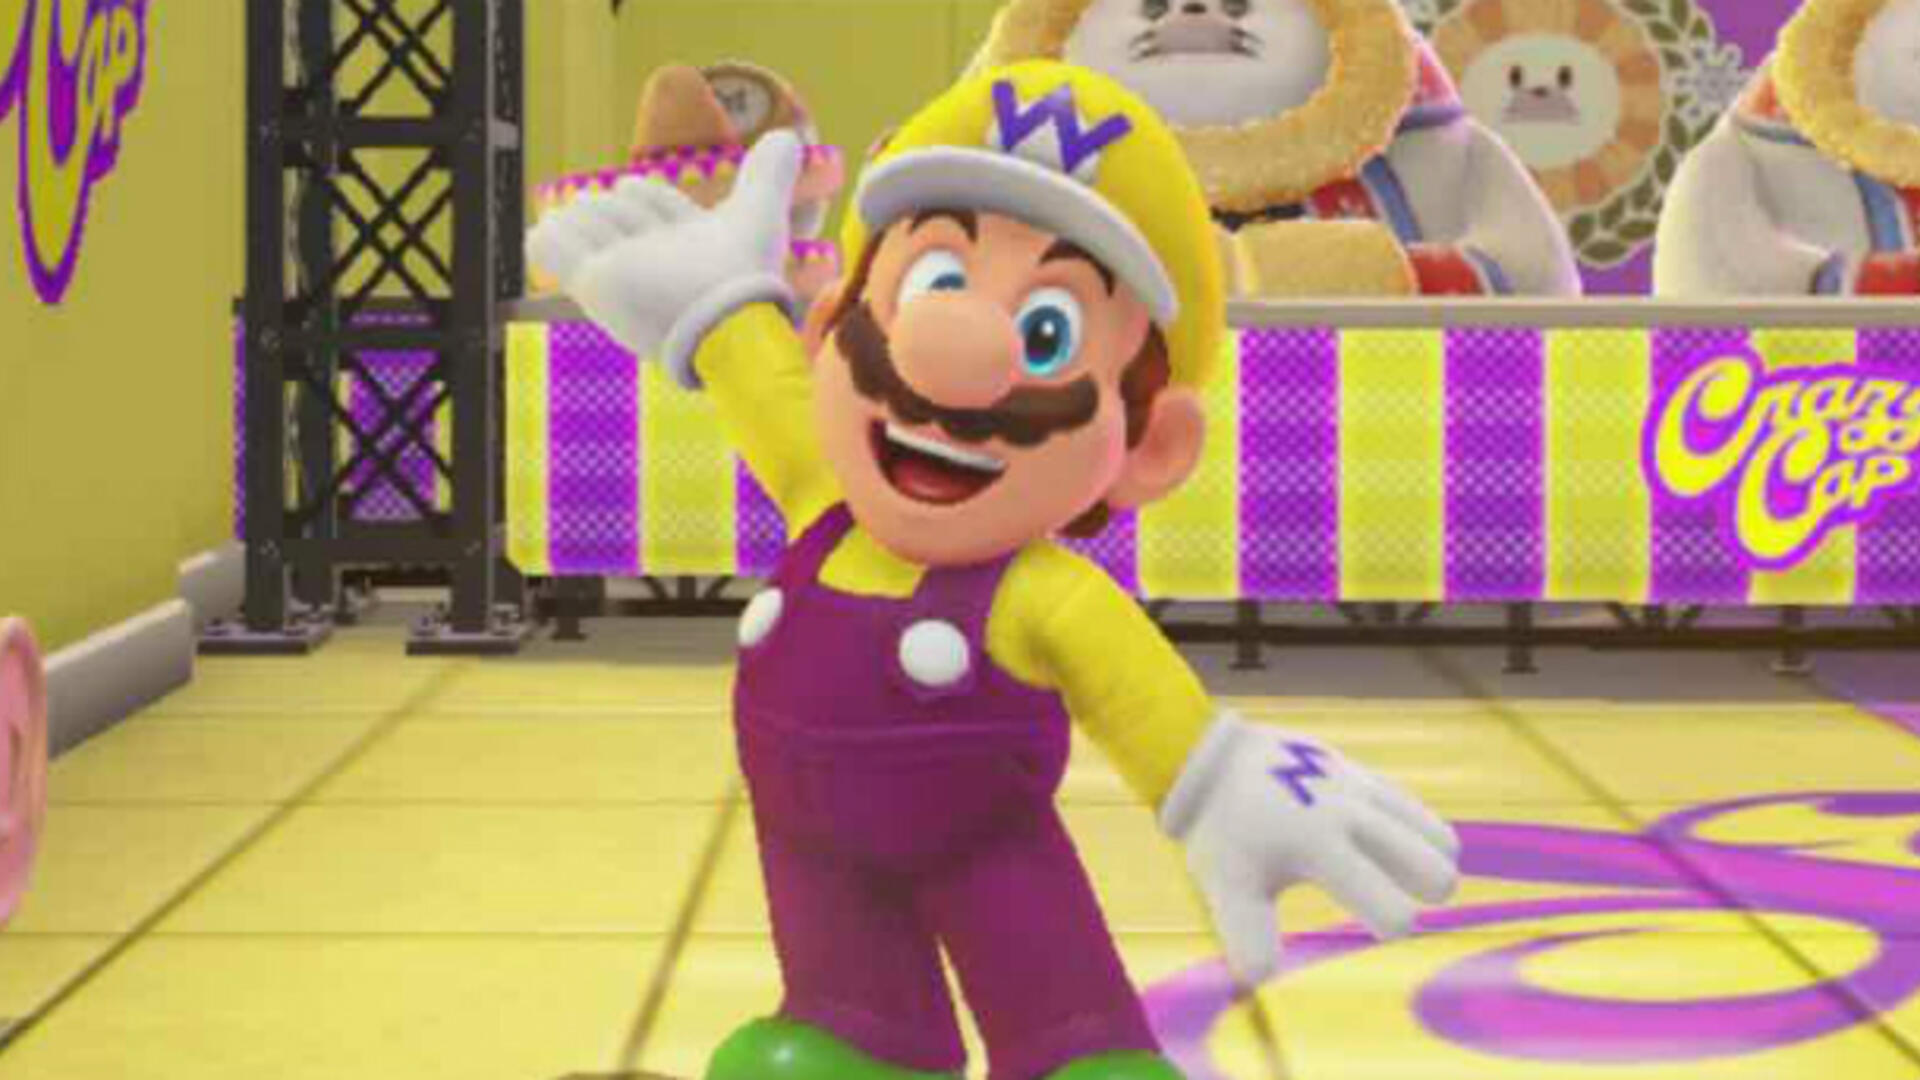 Super Mario Odyssey Sells 1.1 Million In The US, Becoming Fastest-Selling Super Mario Title